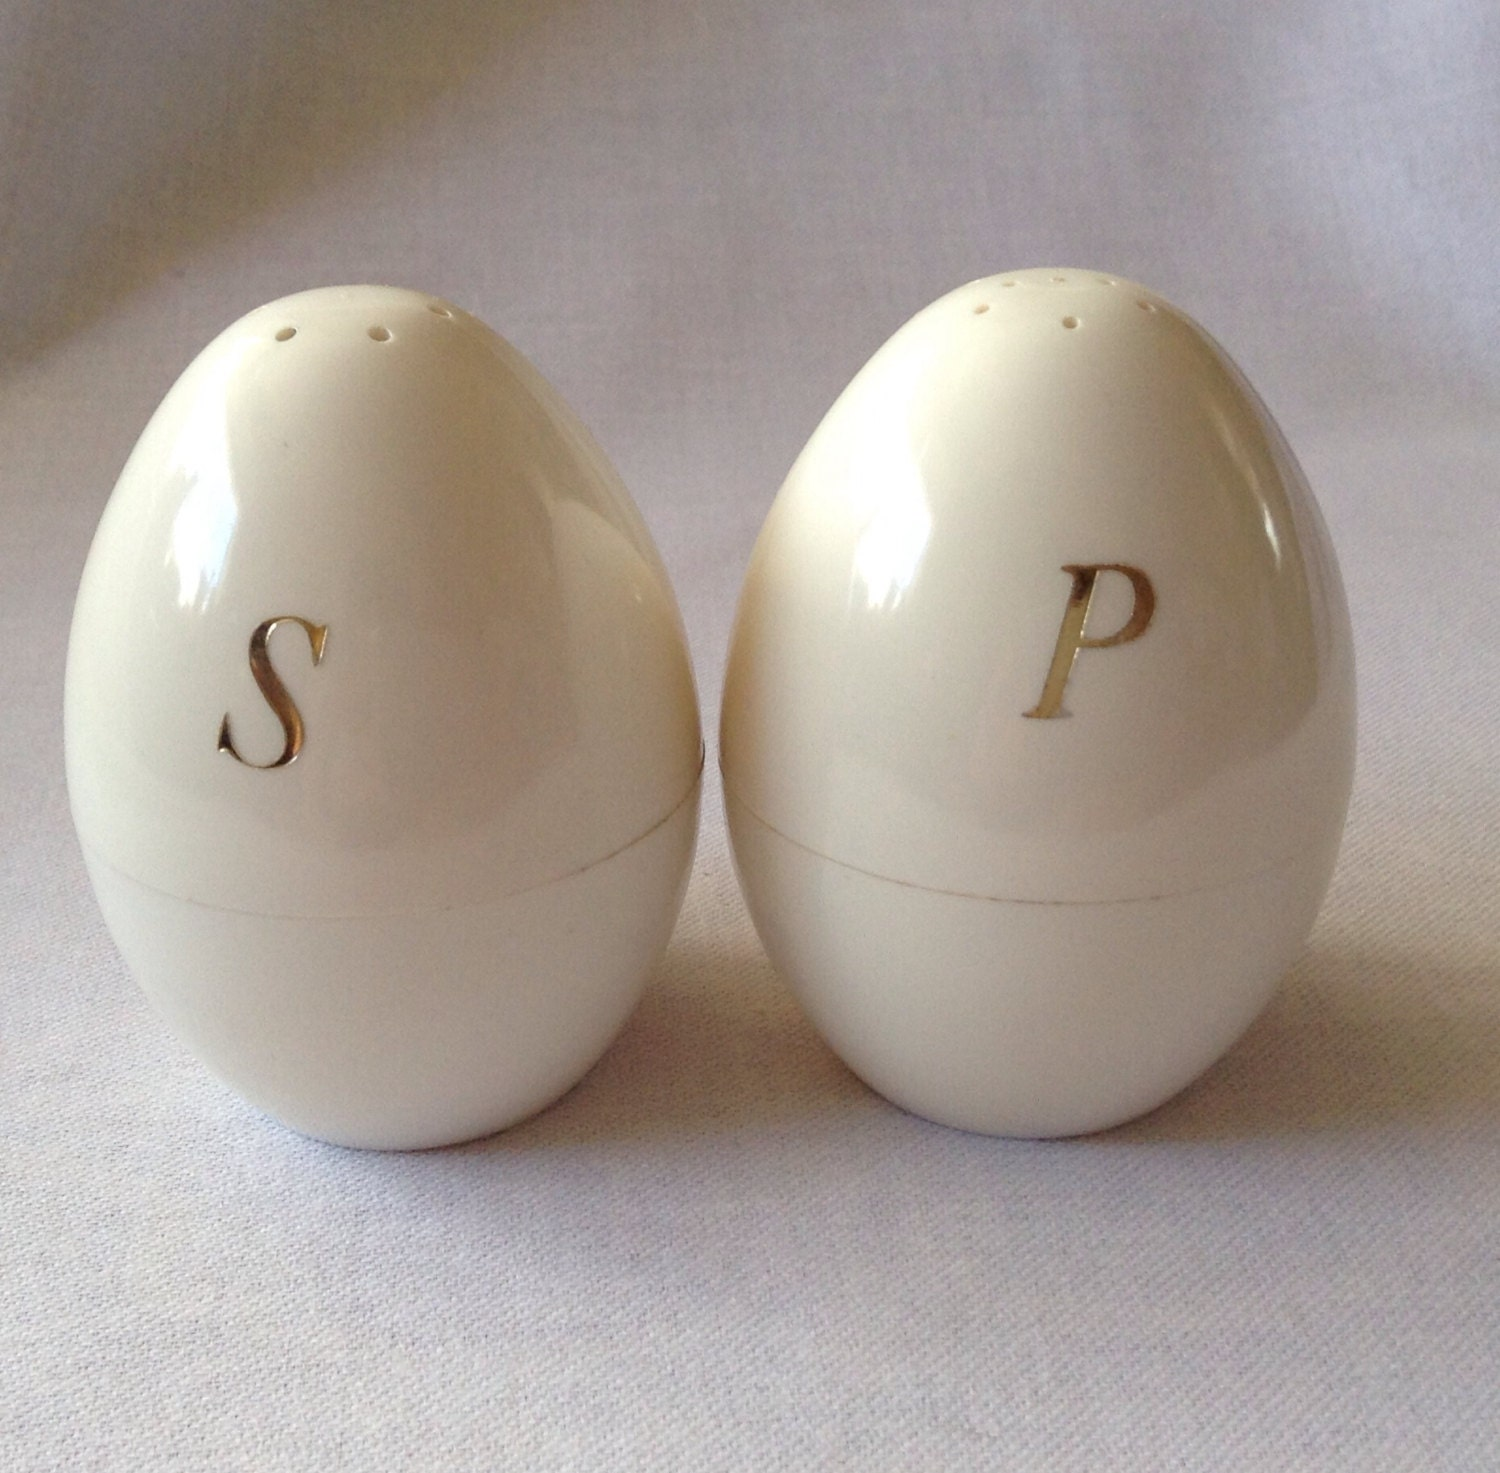 Vintage egg shaped salt and pepper shakers - Egg shaped salt and pepper shakers ...